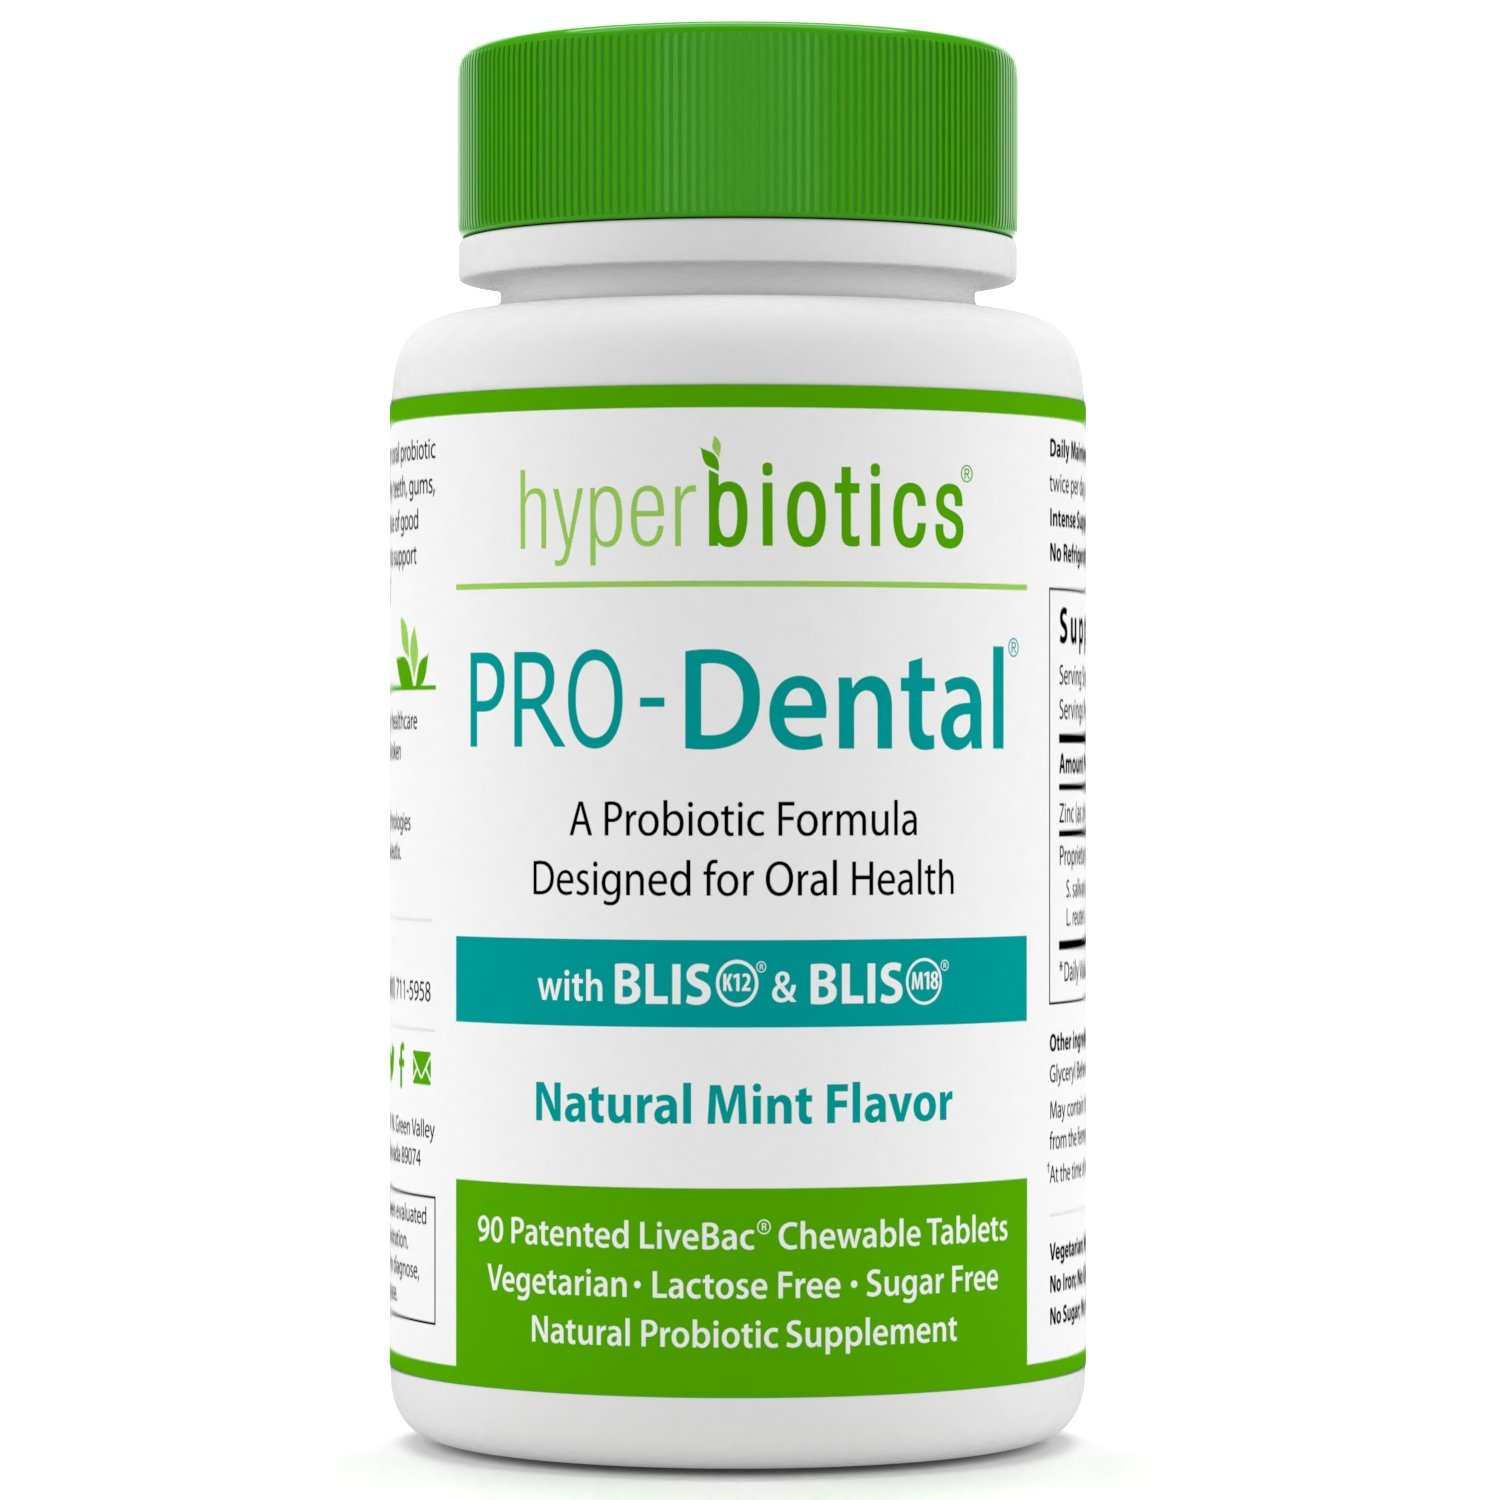 PRO-Dental: Probiotics for Oral & Dental Health - Targets Bad Breath at its Source - Top Oral Probiotic Strains Including S. salivarius BLIS K12 & BLIS M18 - Sugar Free (Chewable) - 90 Day Supply